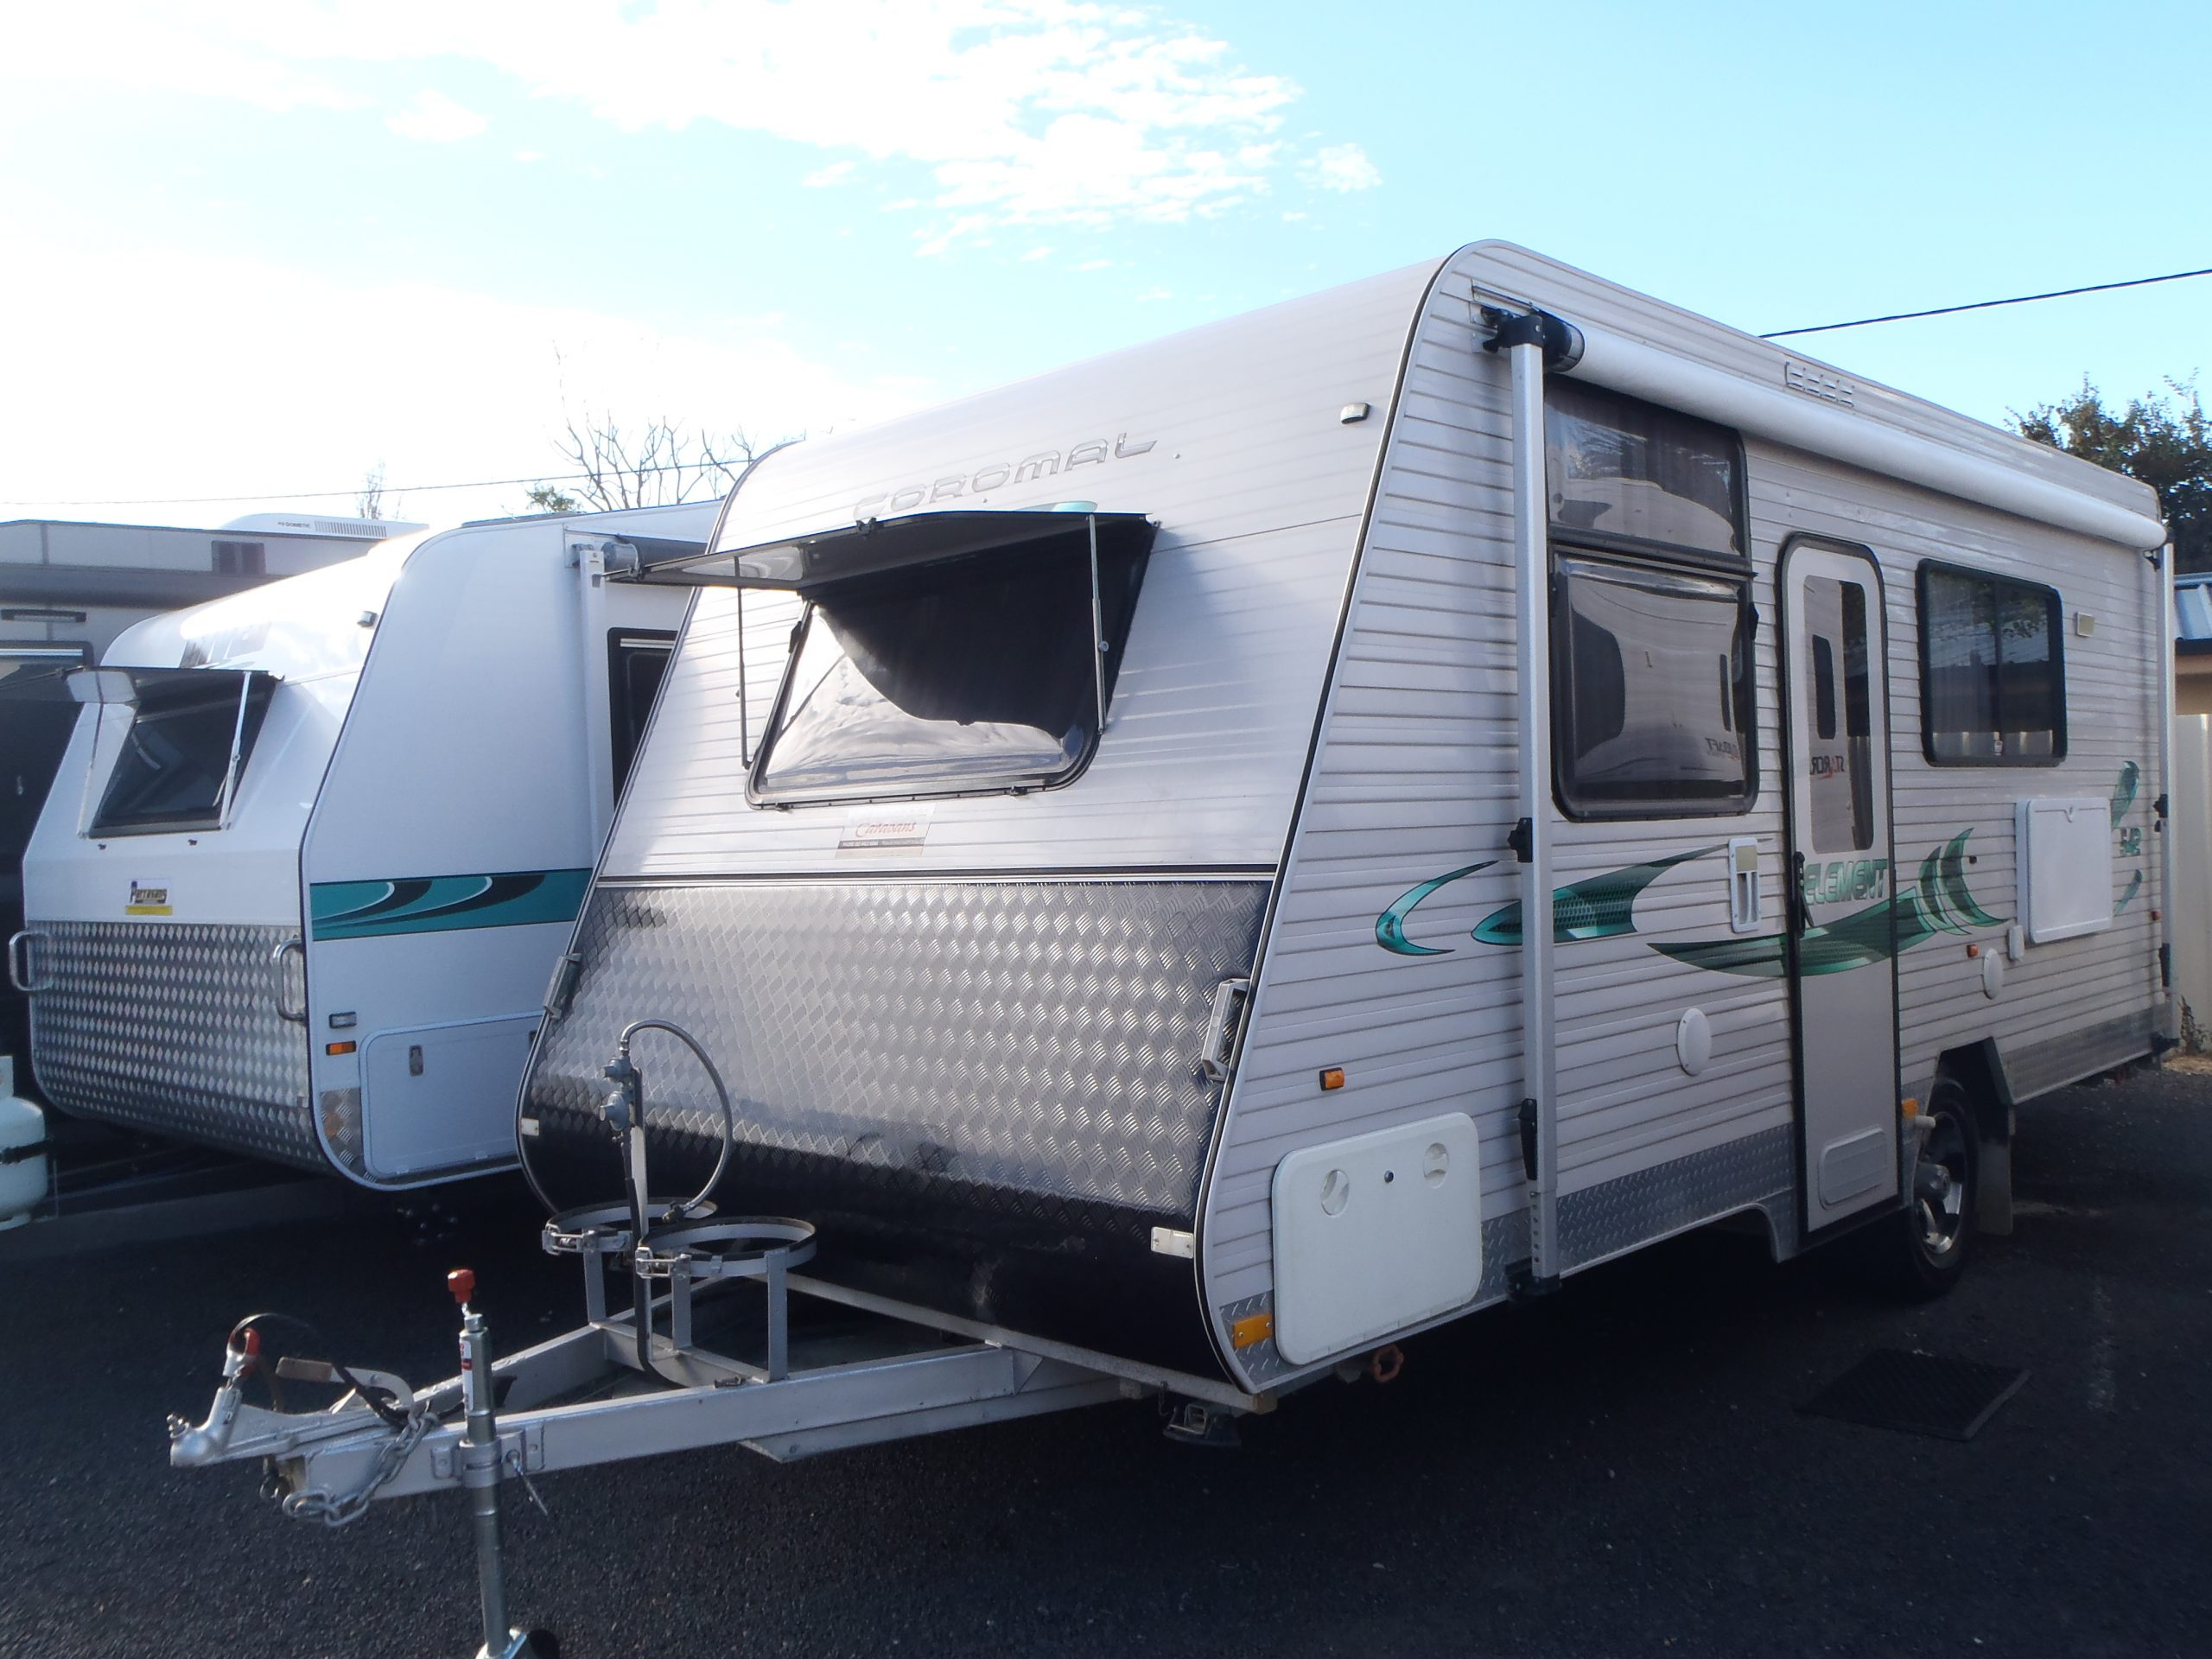 17'6 Coromal Element 542, 2013 for sale in Windsor, NSW. SN 3032